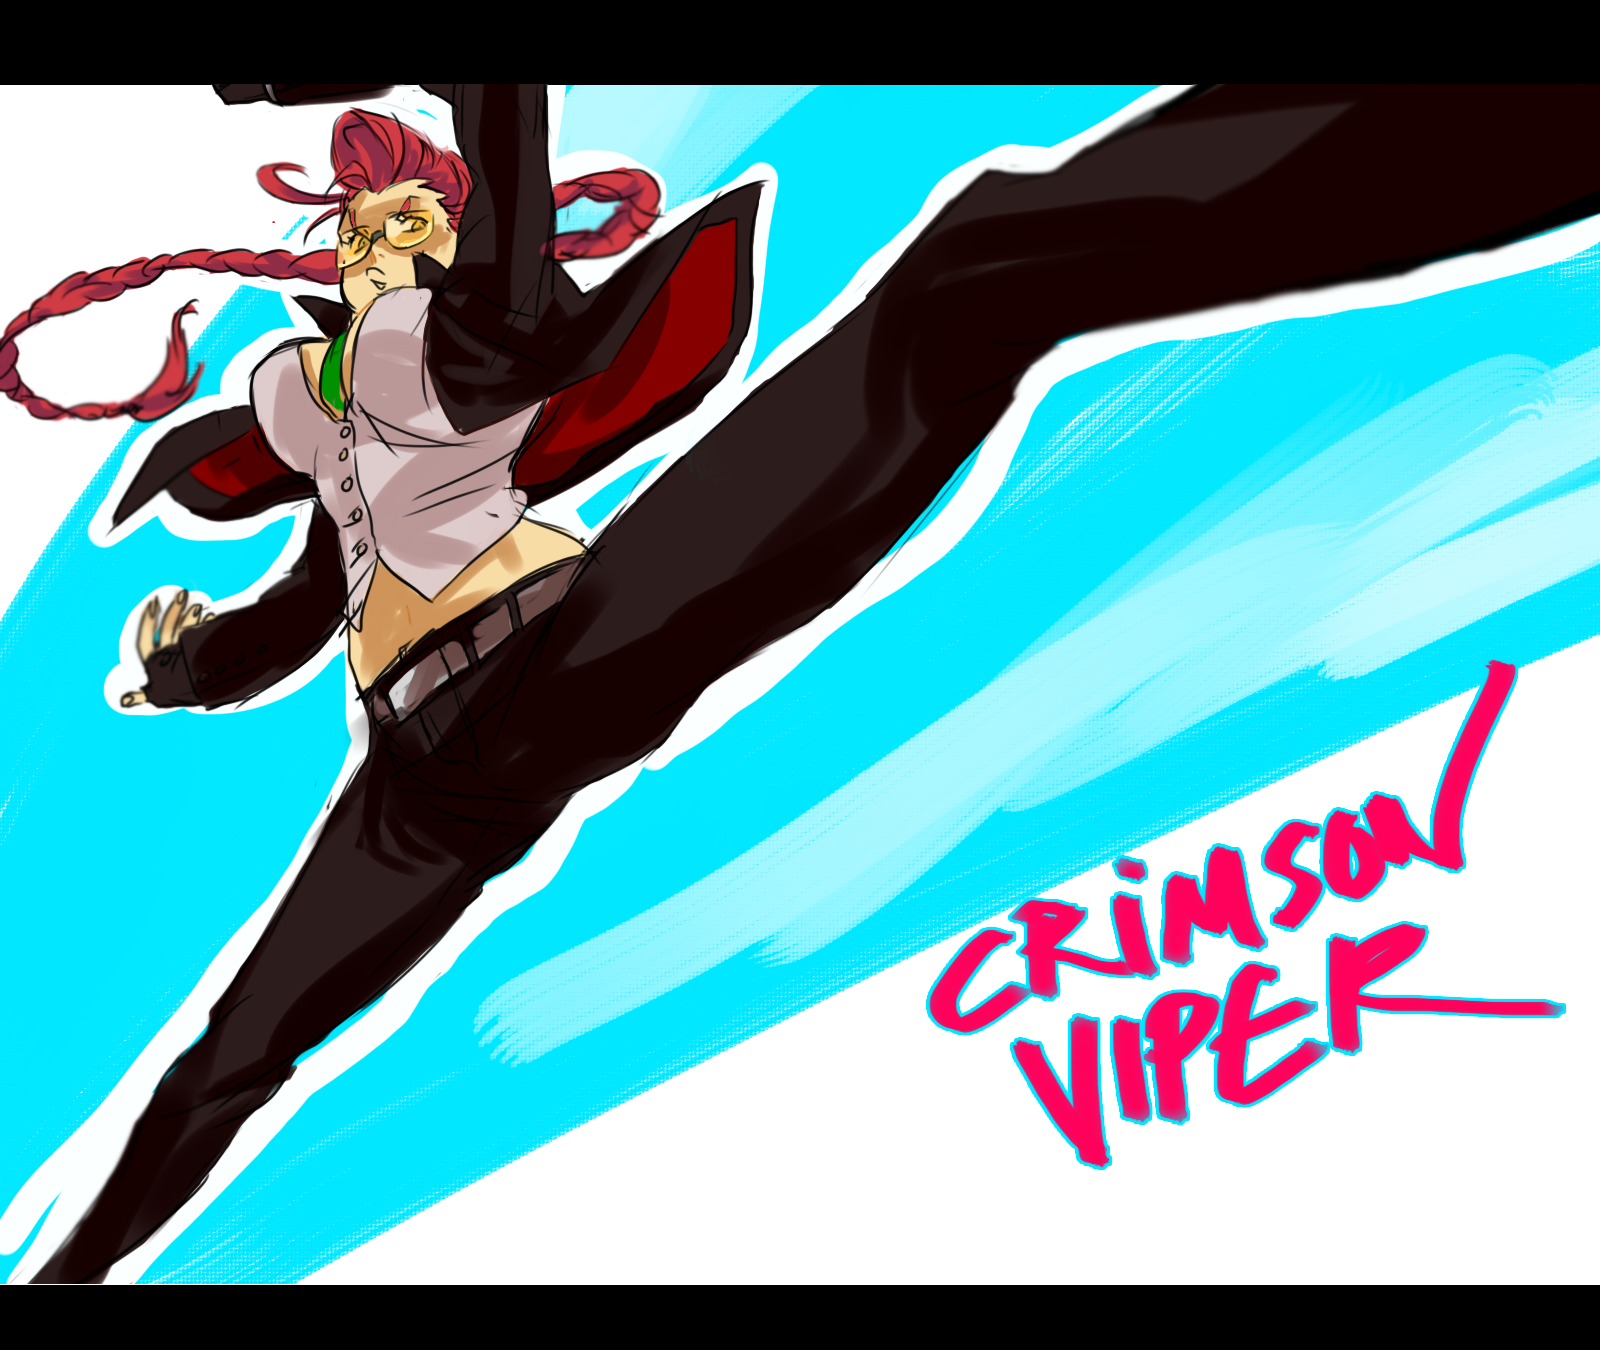 C VIPER by spacedrunk